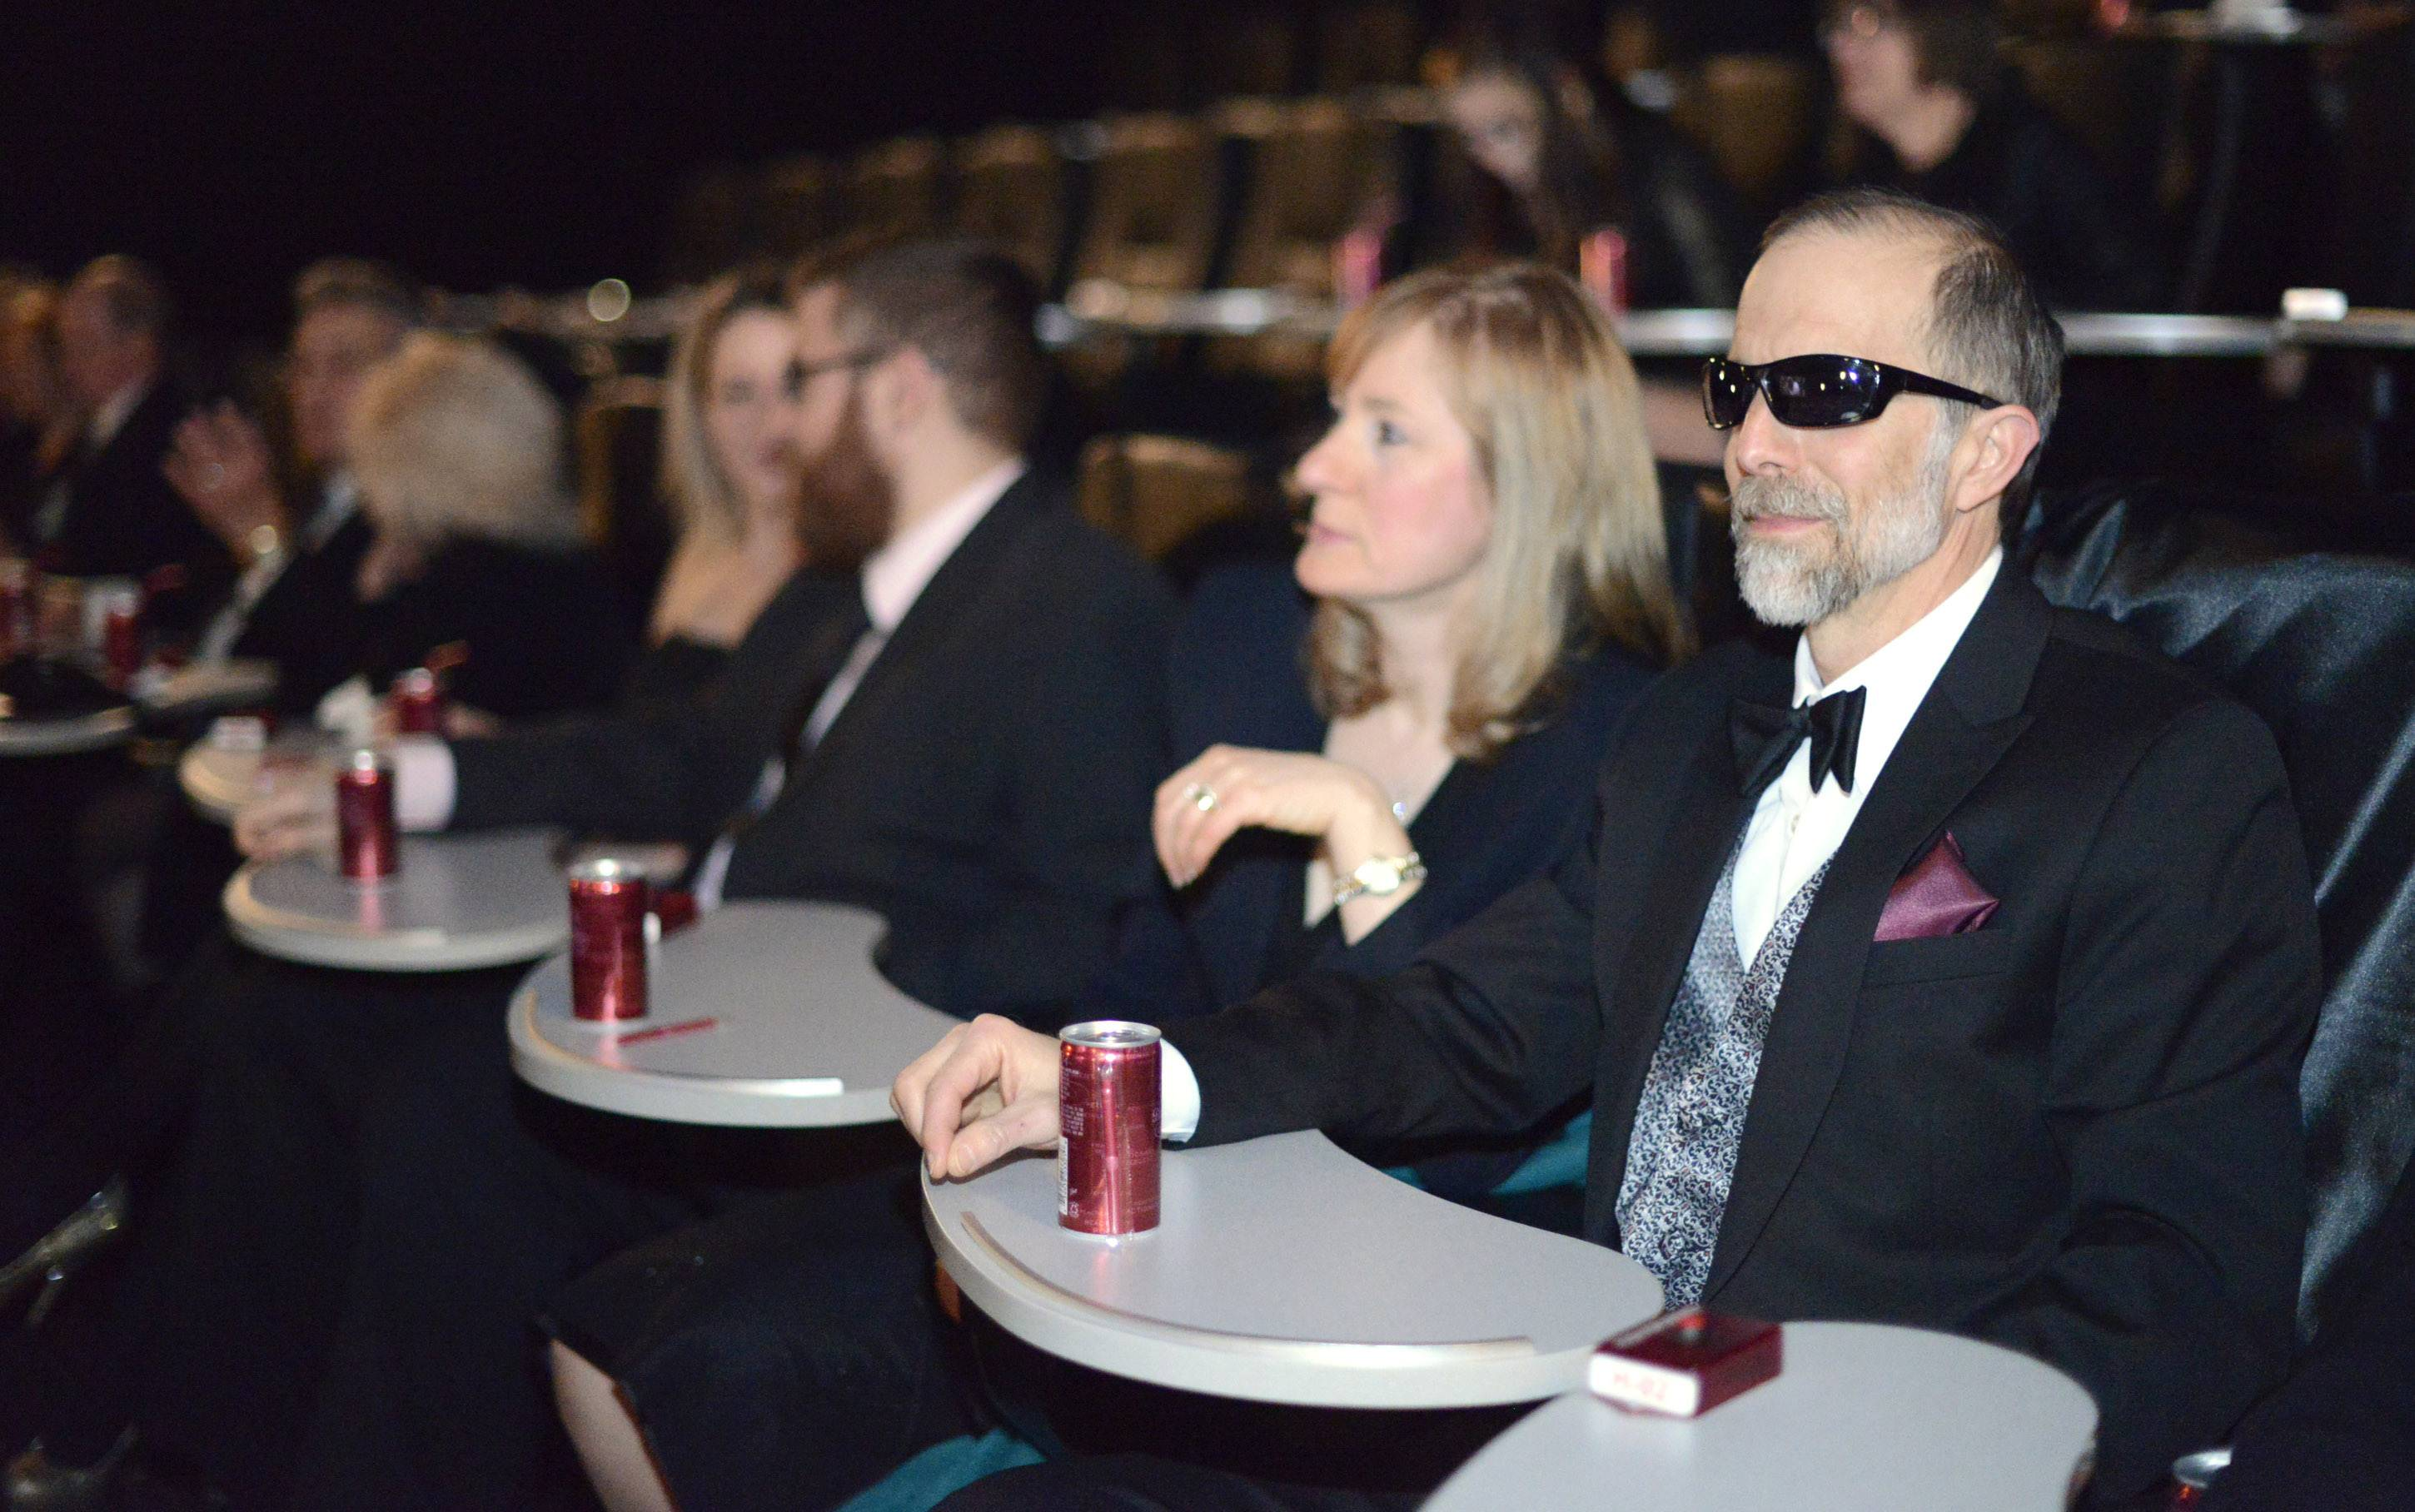 Tom Spadafora of Aurora, with wife Debbie, wore movie-star sunglasses to complement his tux Sunday at a Daily Herald subscribers event hosted by Dann Gire at Studio Movie Grill in Wheaton.